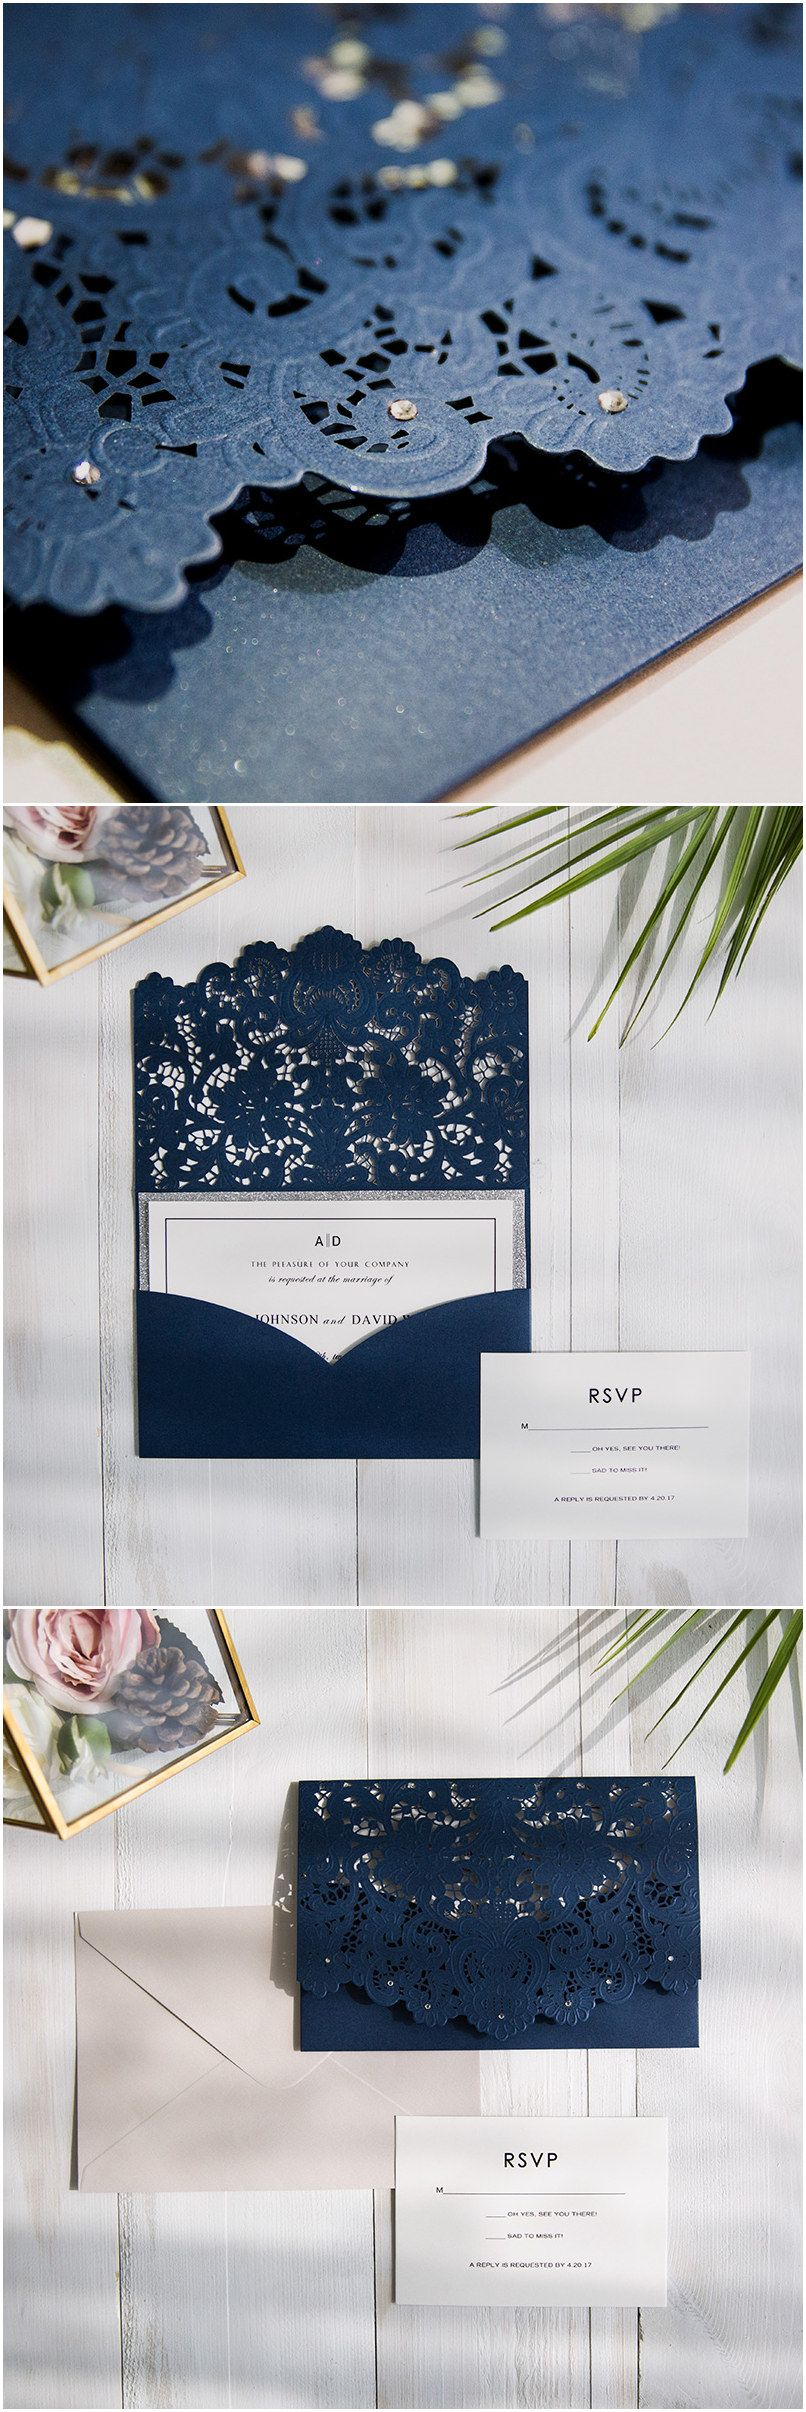 diy rustic wedding invitations burlap%0A elegant navy blue laser cut pocket wedding invitation with silver layered  cards